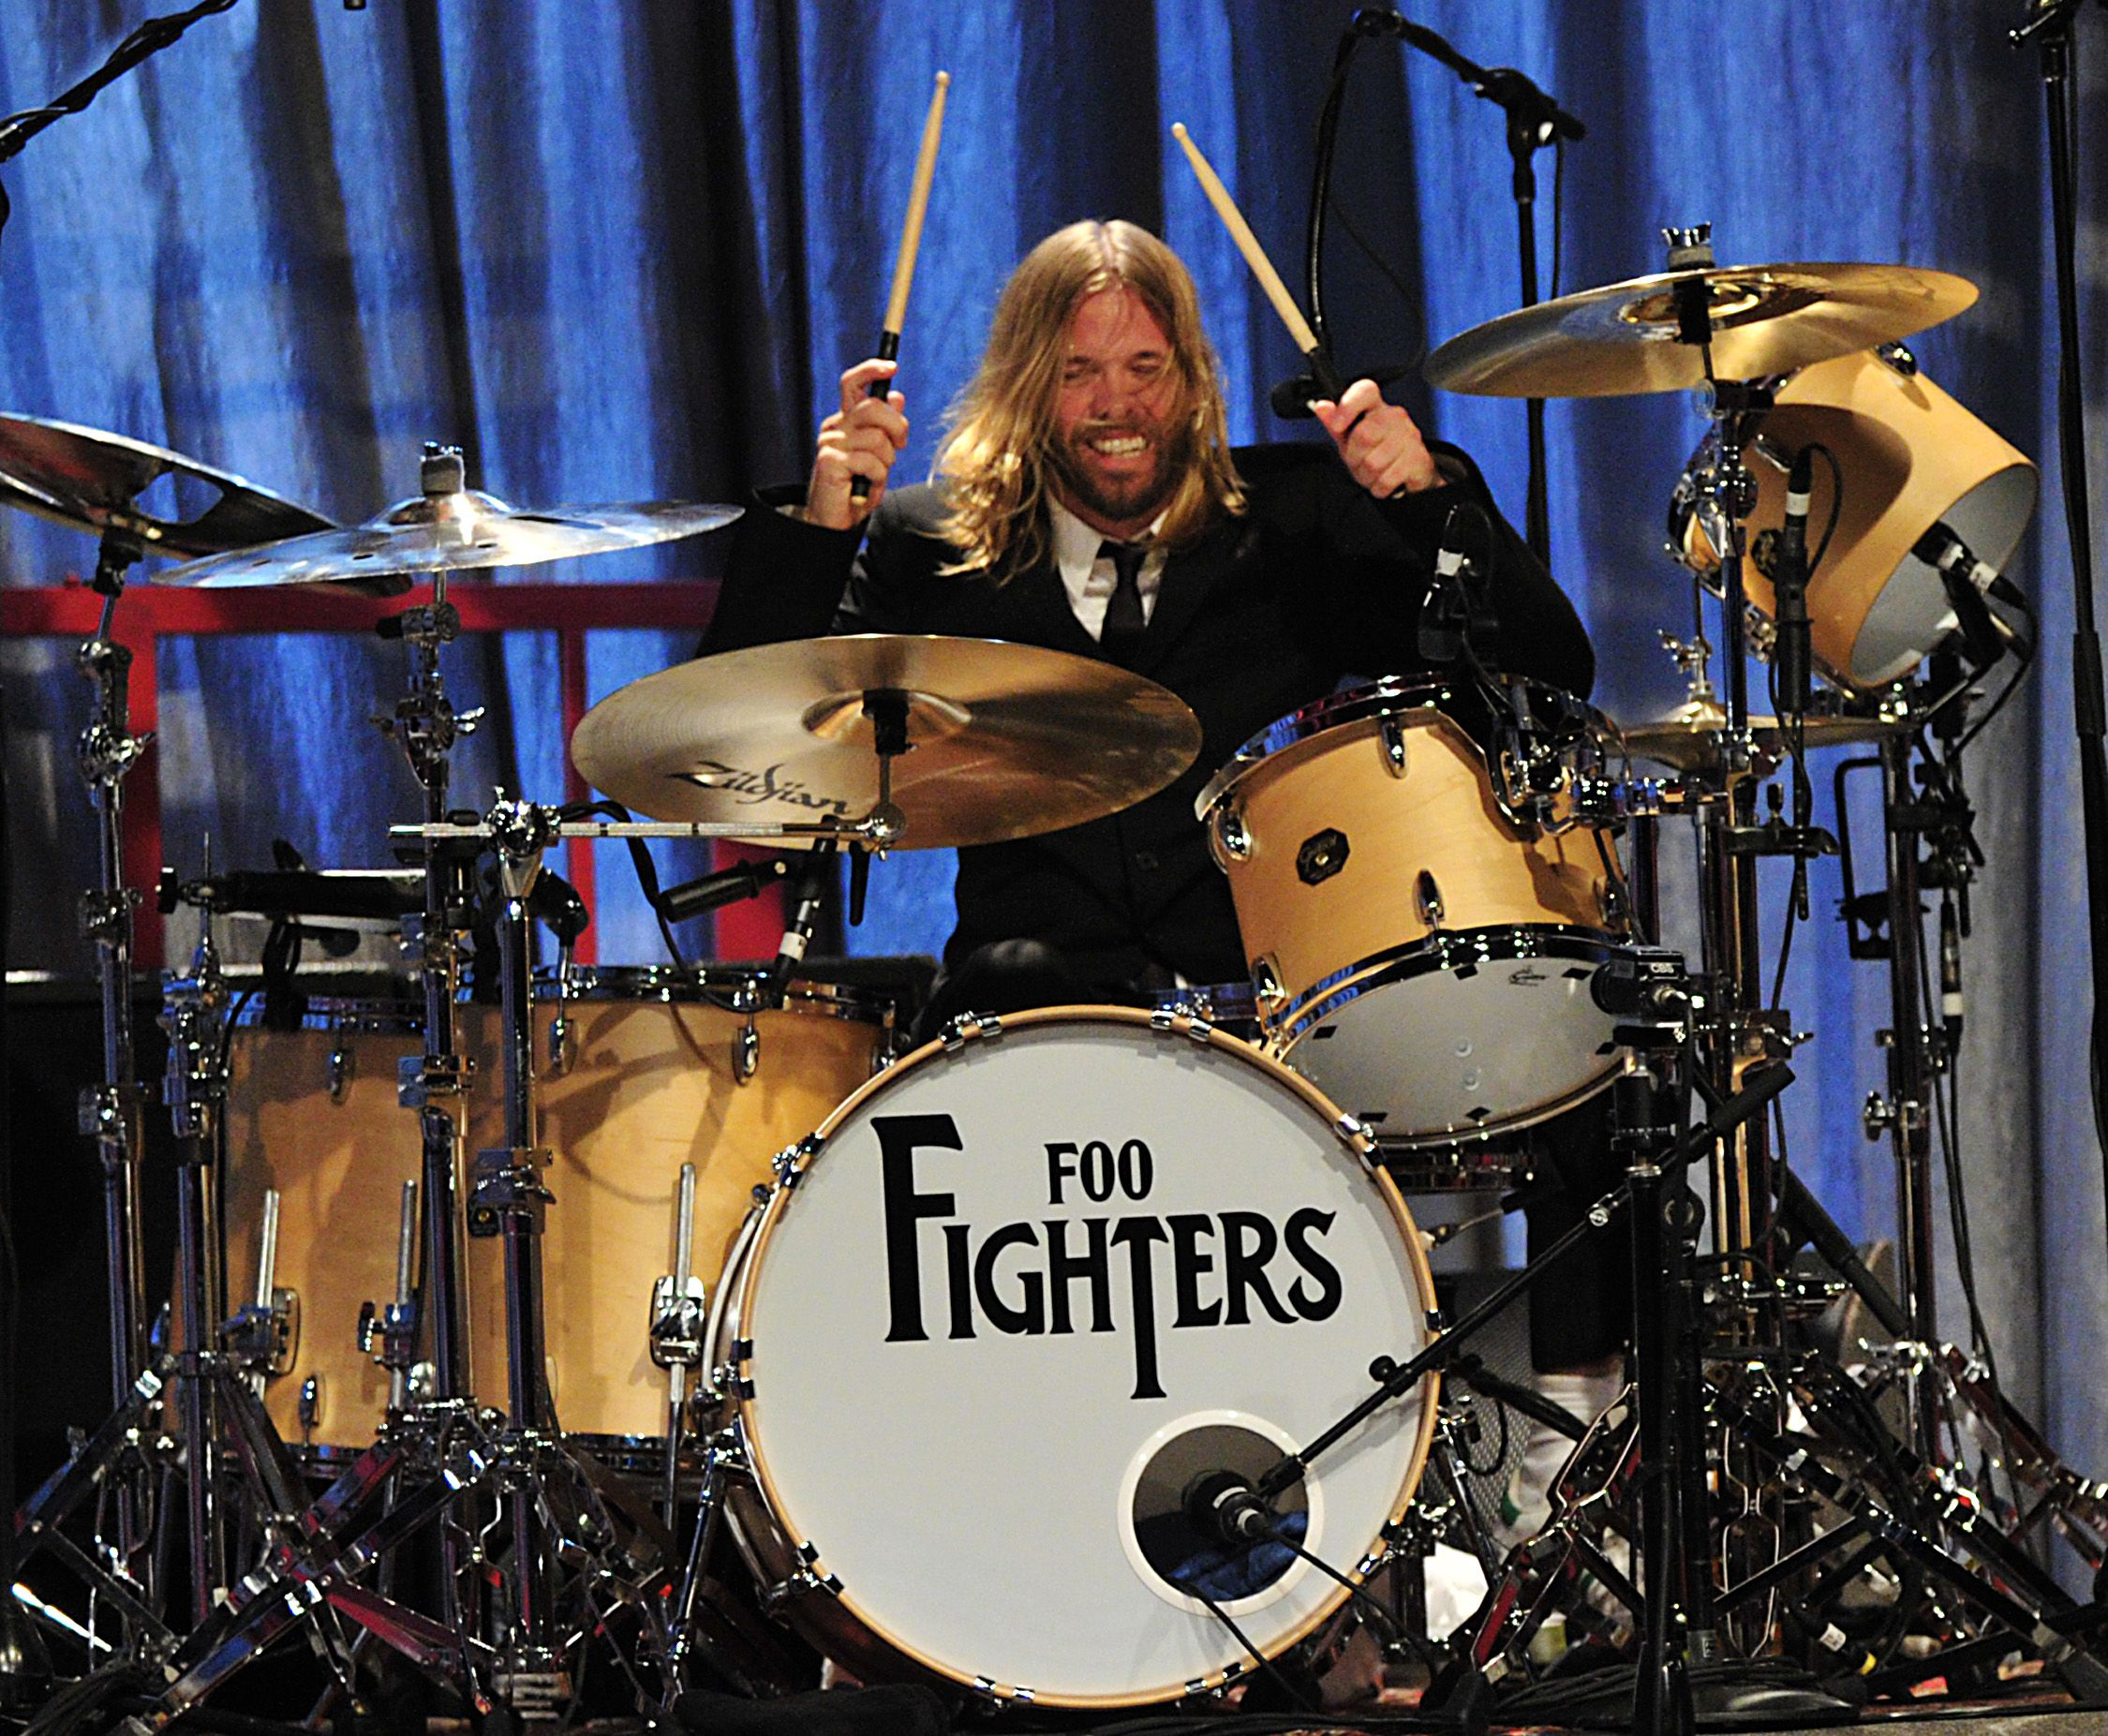 Ah Taylor Hawkins. Check him out in the Everlong video - dressed as a woman, asleep in bed, only to suddenly awake and reveal under the covers ... a drum kit. No1 singing drummer in drag (although this is probably a fairly niche claim to fame ...)